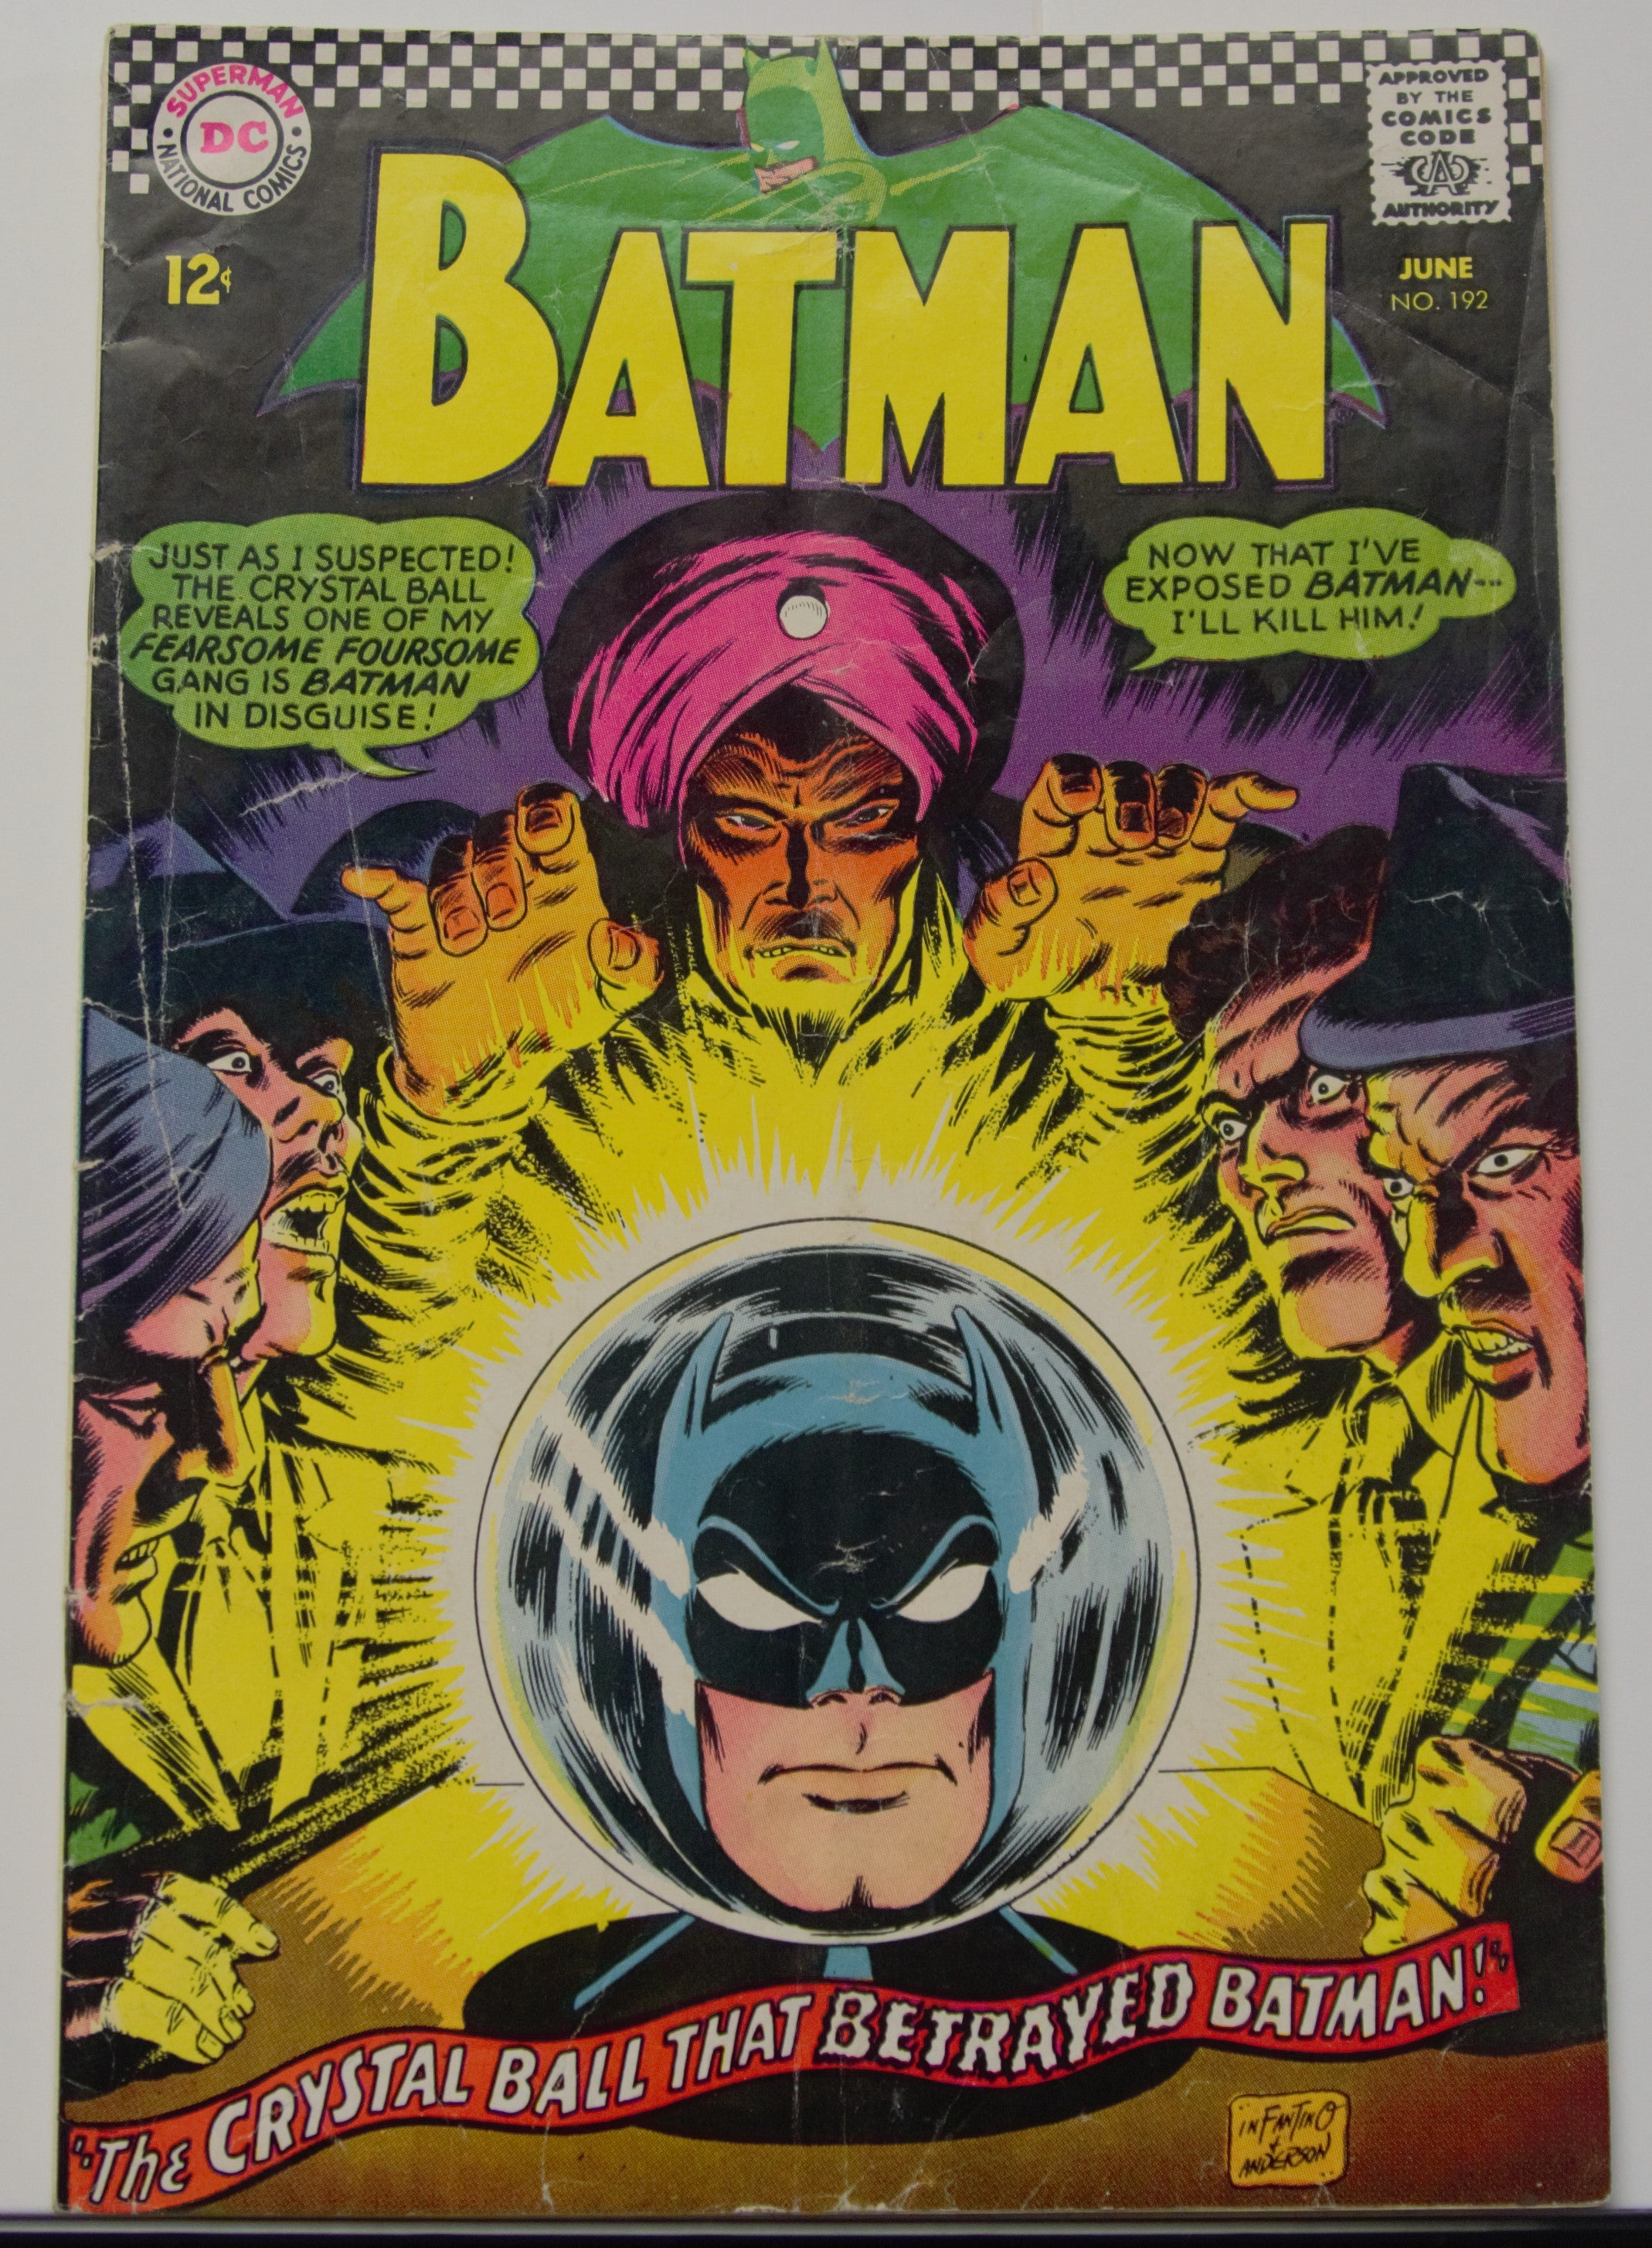 A01 Batman #192 - 01/26/2020 TEST DO NOT BID